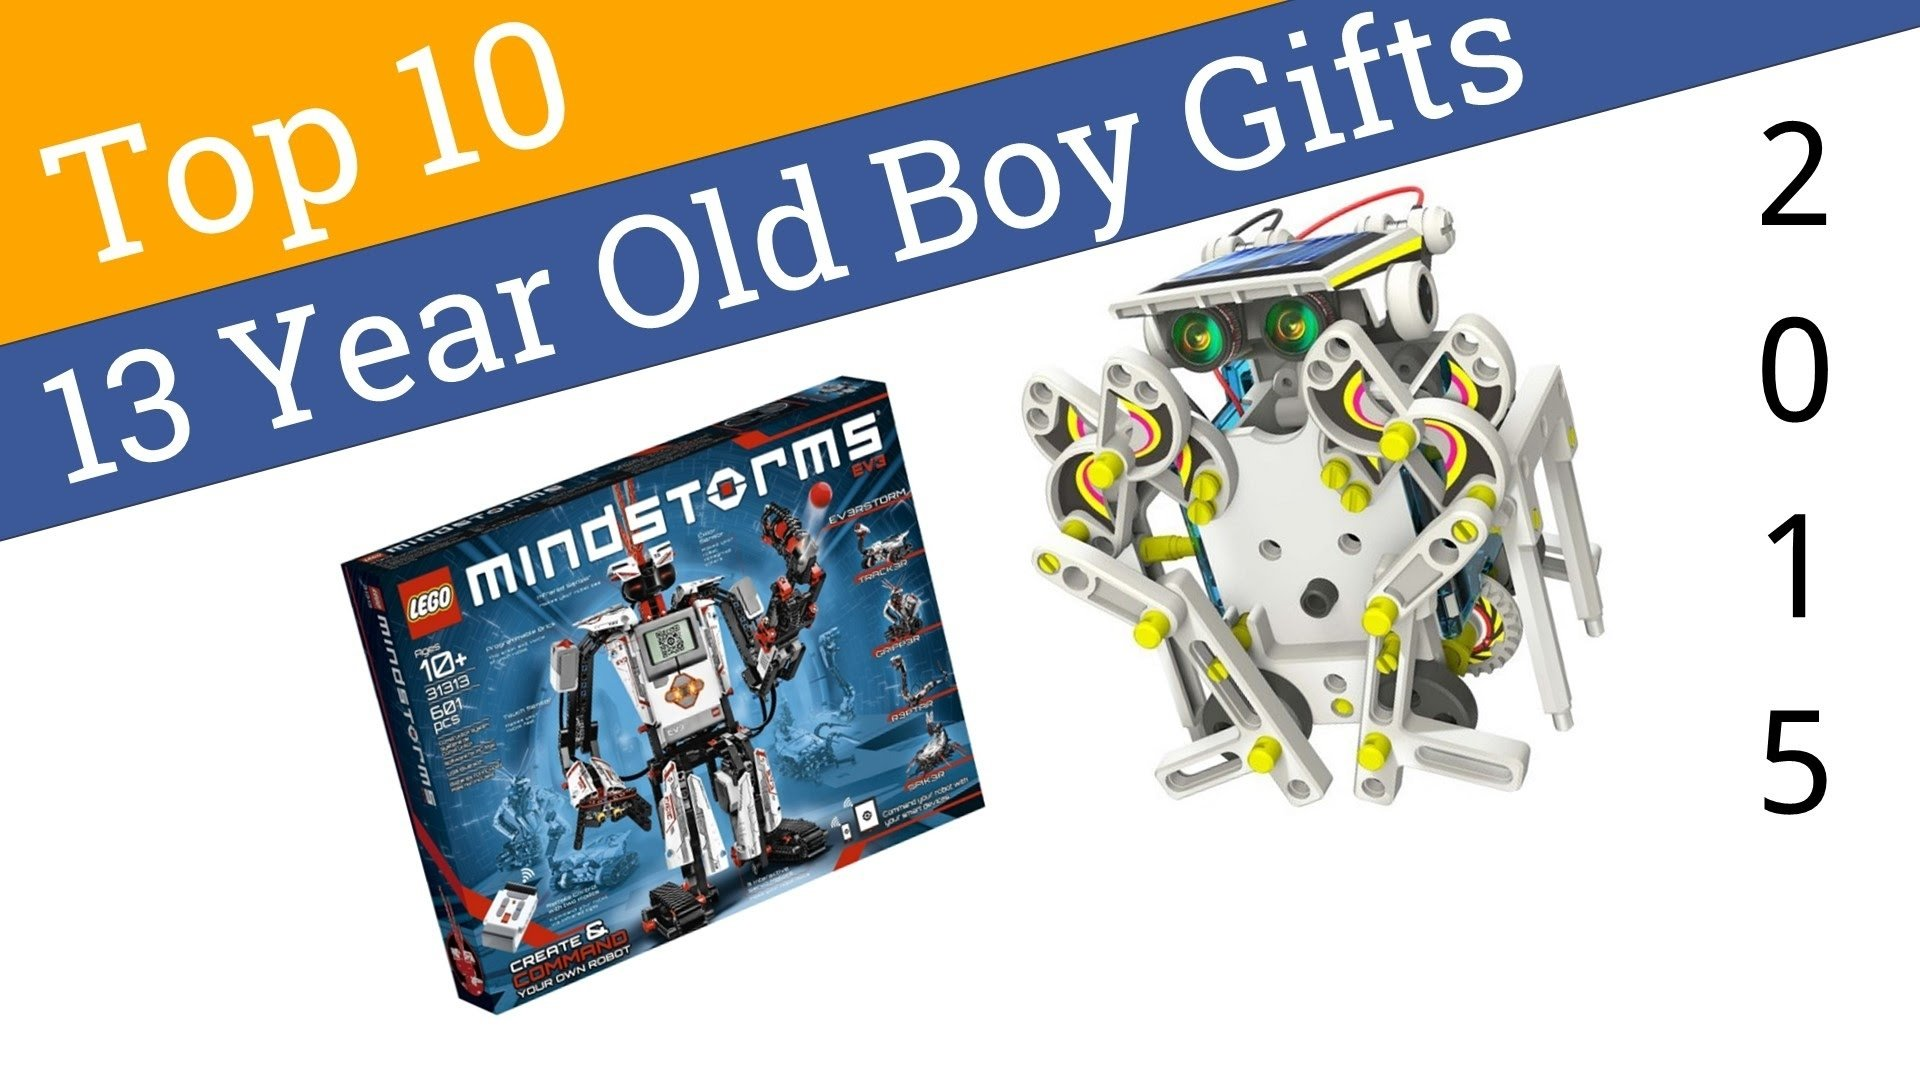 10 Stunning 13 Year Old Boy Birthday Gift Ideas 10 best 13 year old boy gifts 2015 youtube 5 2020